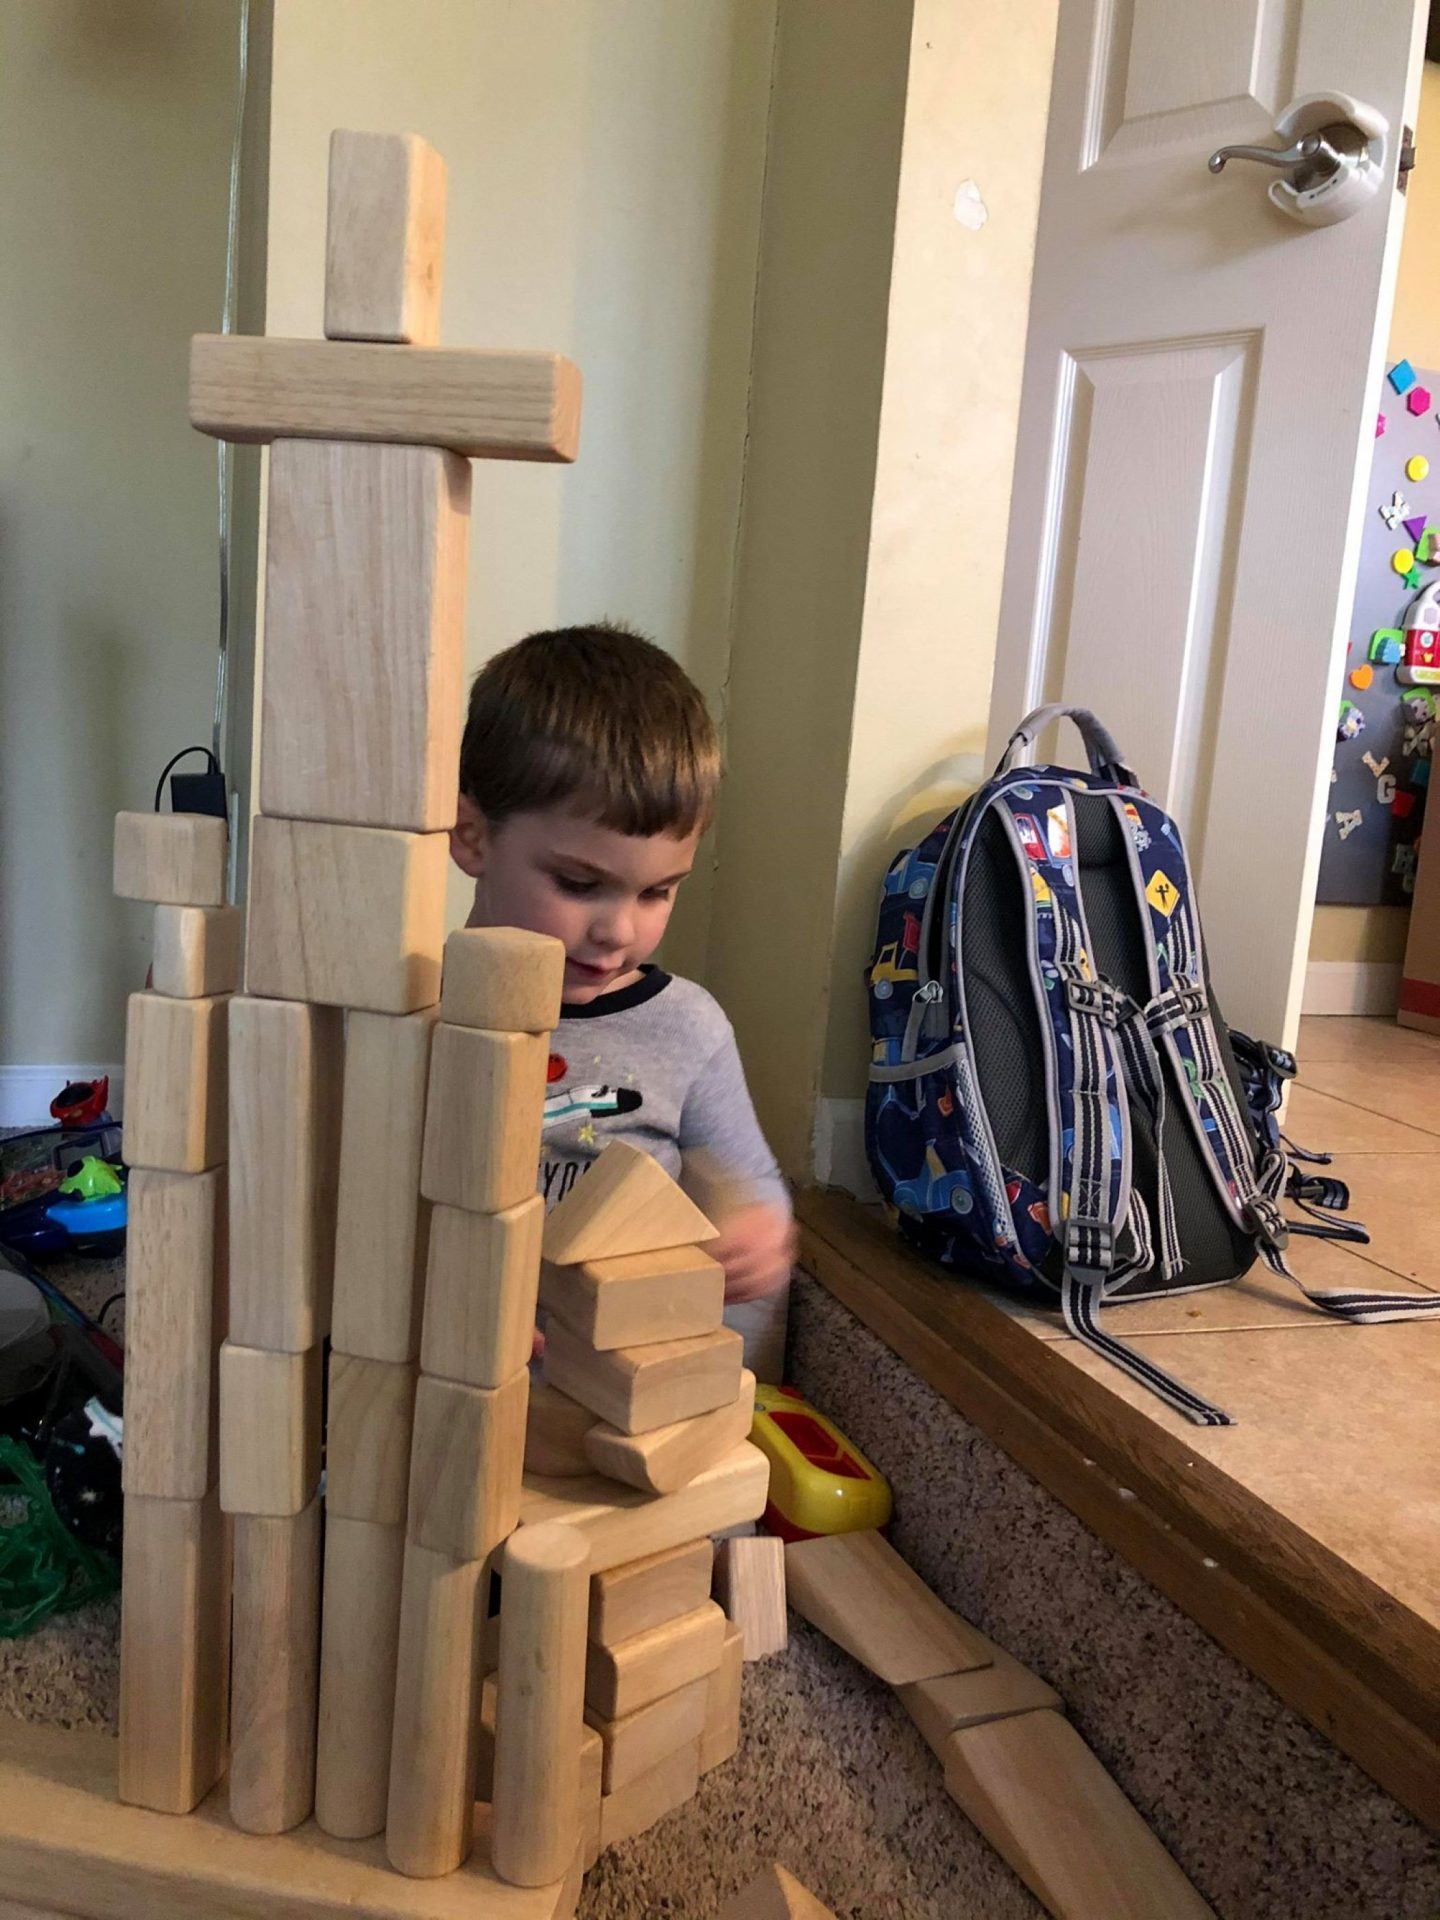 Tara Ryan-Schill's 3-year-old son Jacob plays with blocks at home.